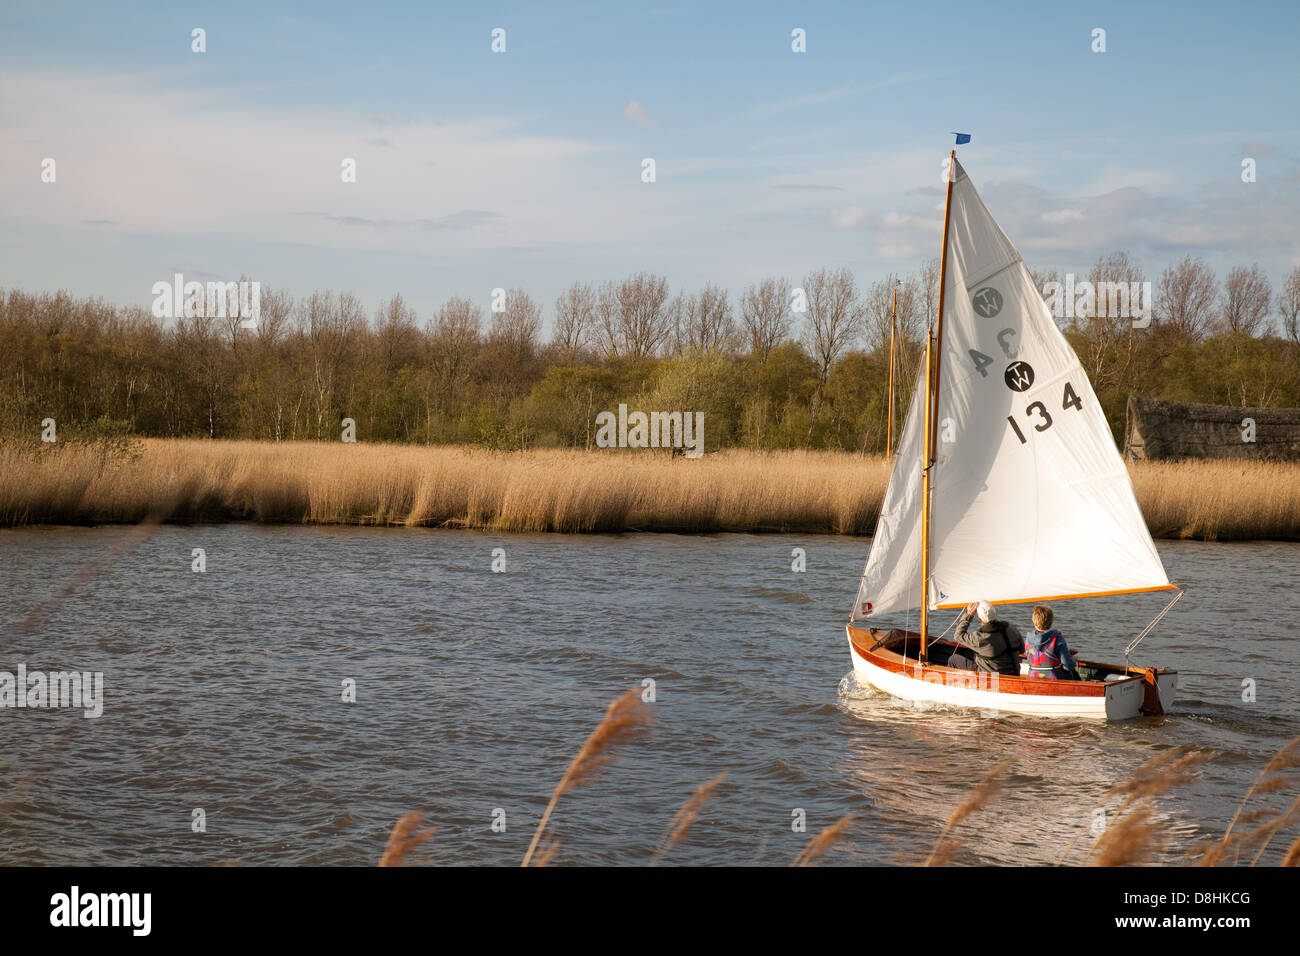 A sailboat sailing on the Norfolk Broads at Horsey Mere, East Anglia England UK - Stock Image